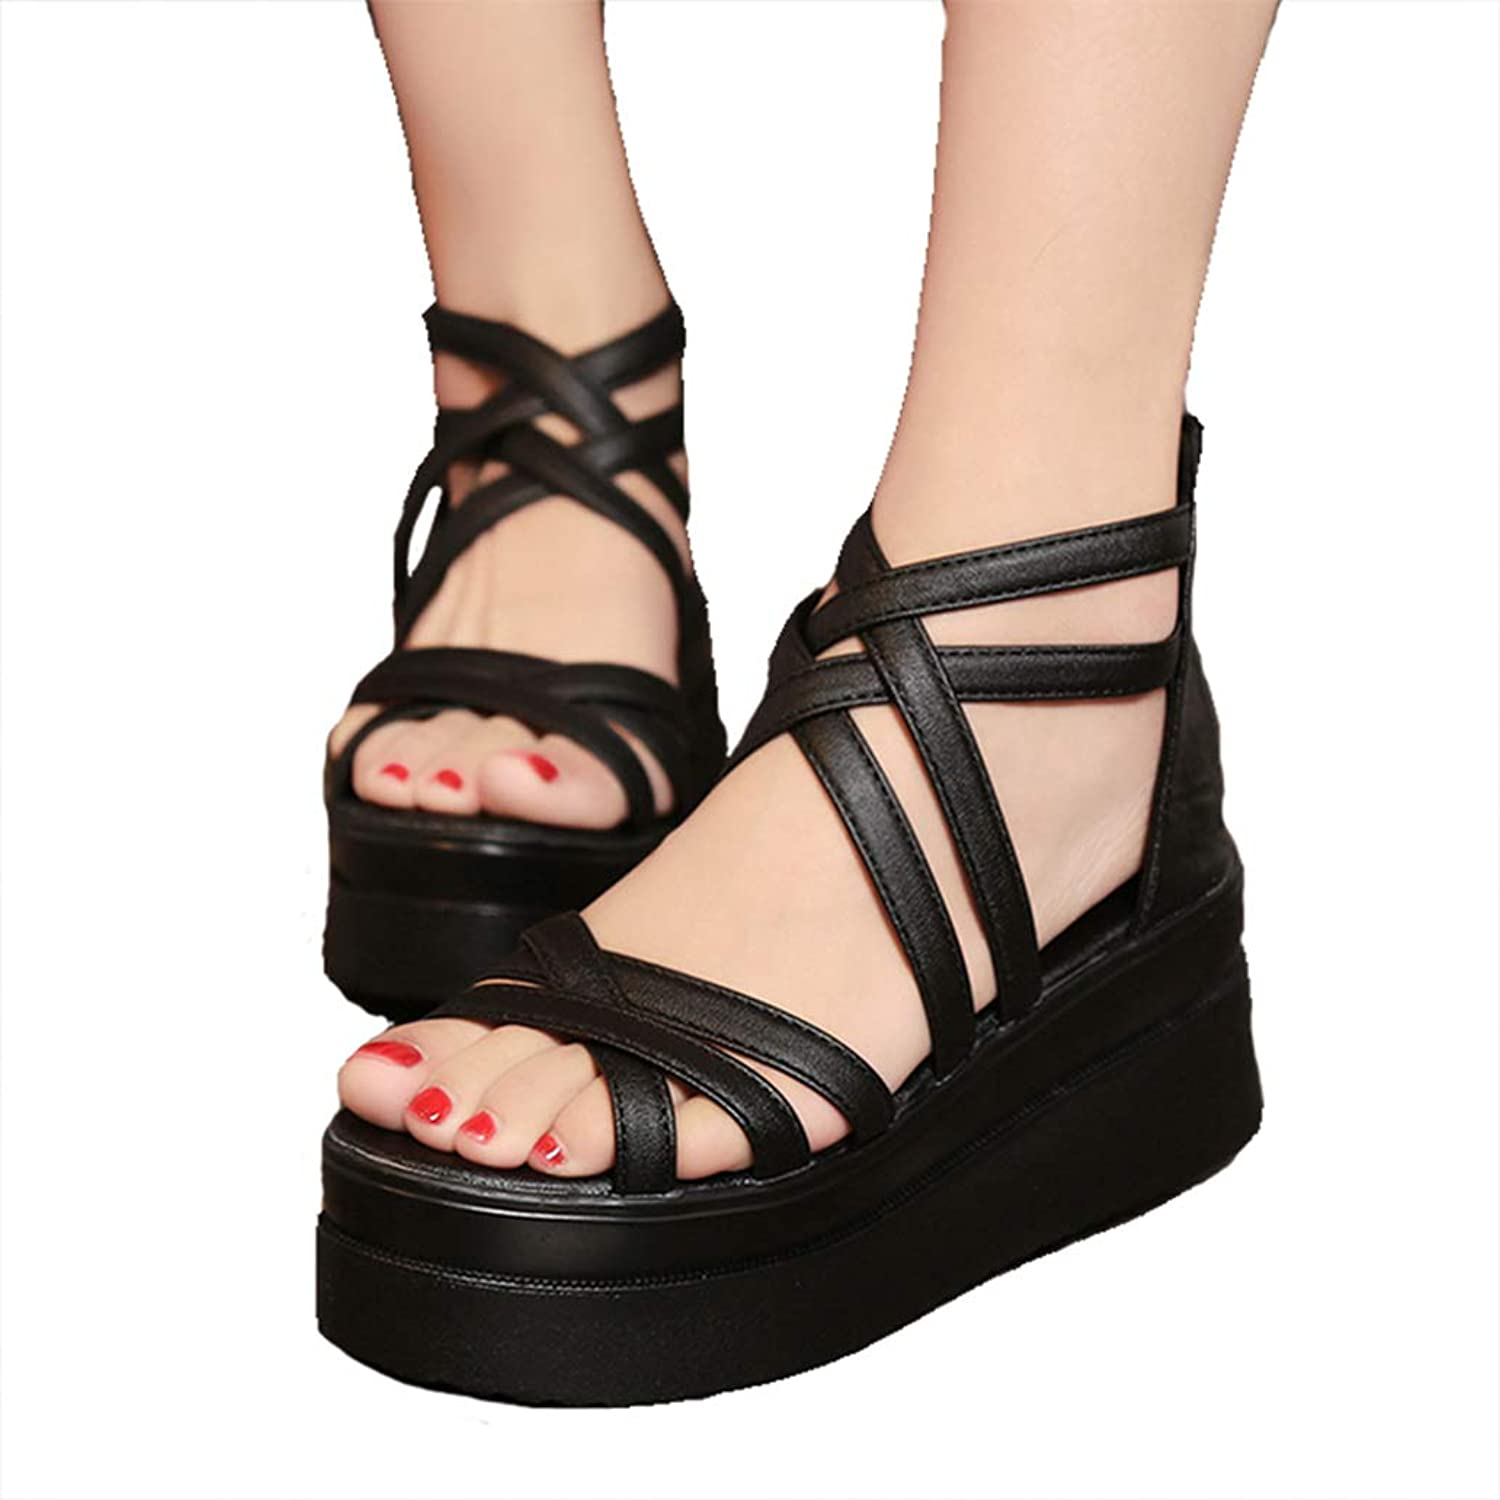 York Zhu Women's Sandals Summer Cross Dewy Toe Women Platform Sandals Roman Wedge Sandals